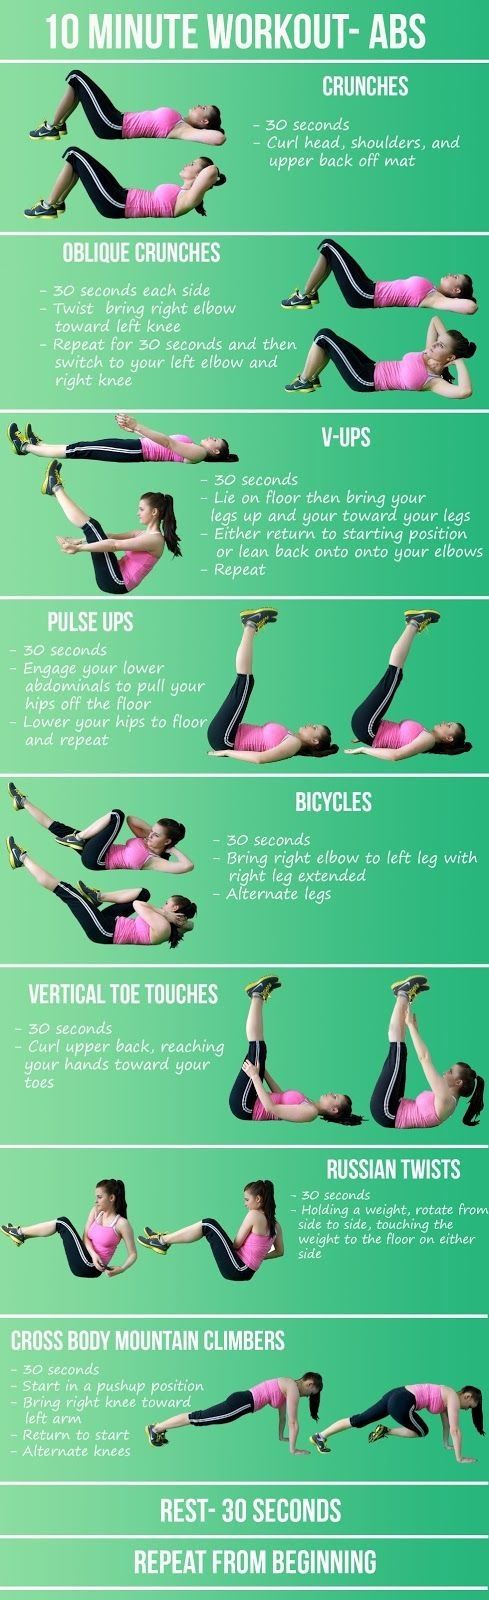 This looks good for anyone who wants to work on their abs.